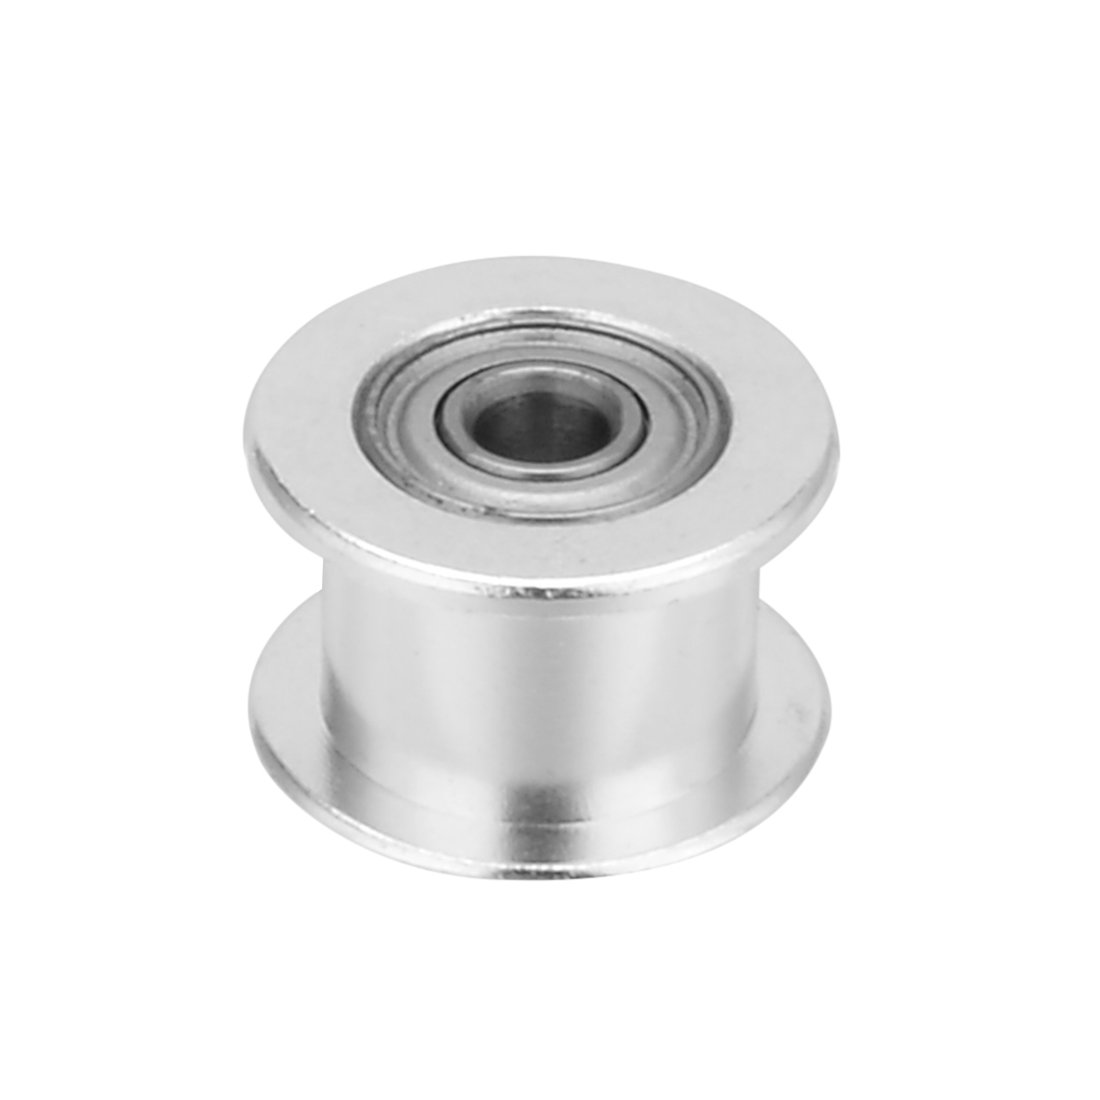 Cheap Cnc T5 Timing Pulley Find Deals On Line Belts And Pulleys Get Quotations Uxcell Aluminum Mxl 16 Teeth 3mm Bore Toothless Belt Idler Synchronous Wheel For 6mm